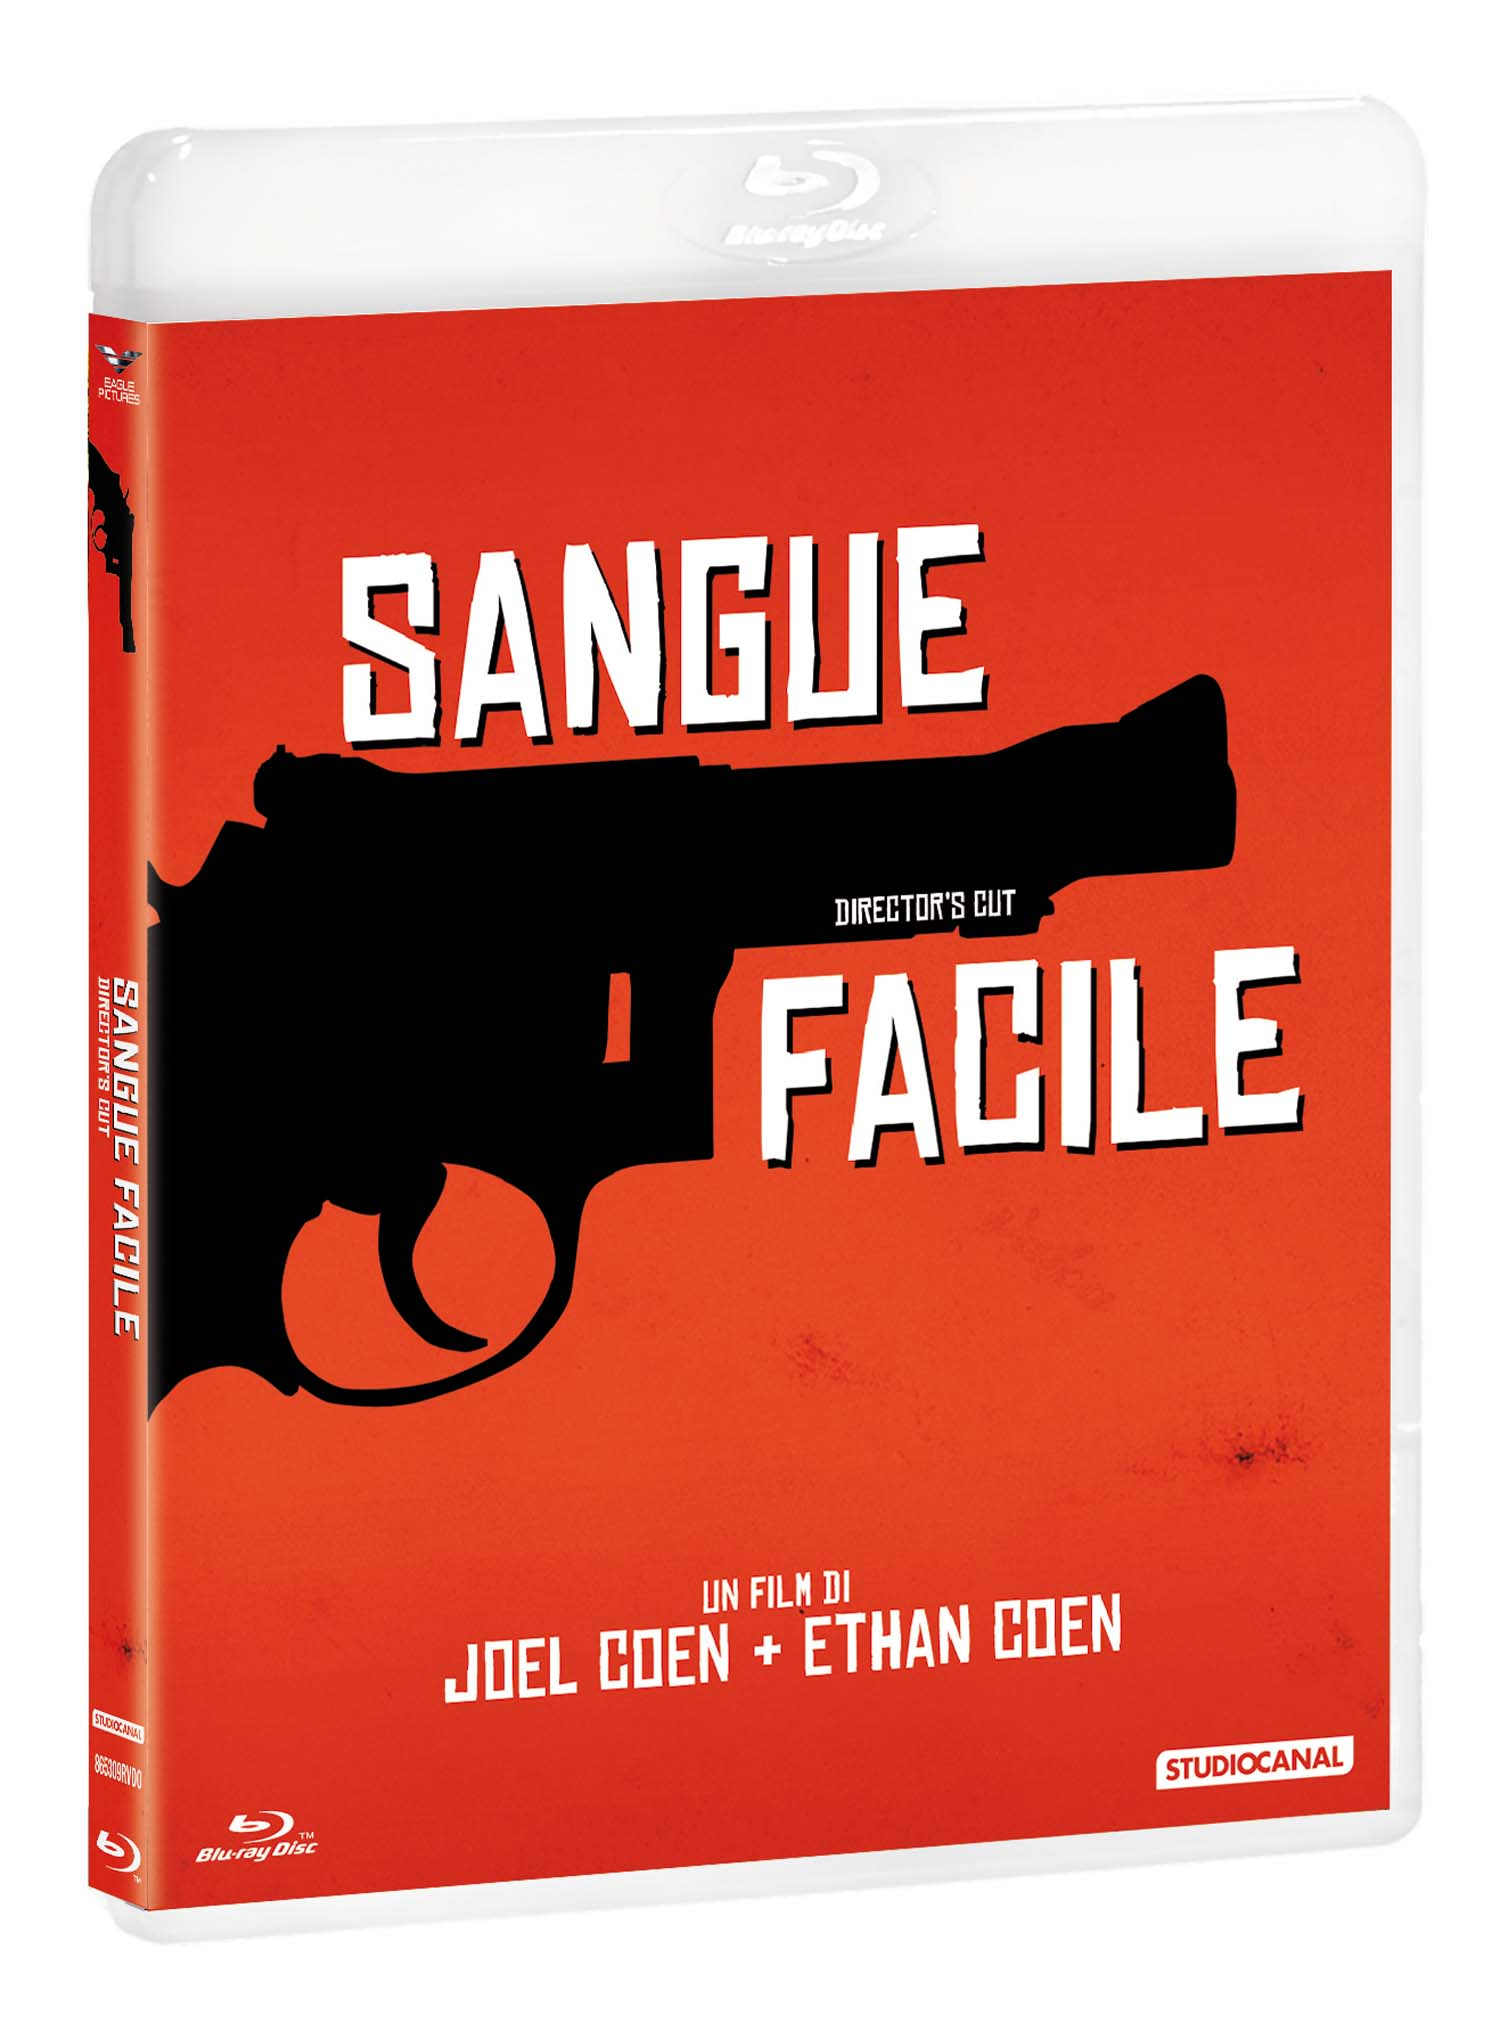 SANGUE FACILE - BLU RAY